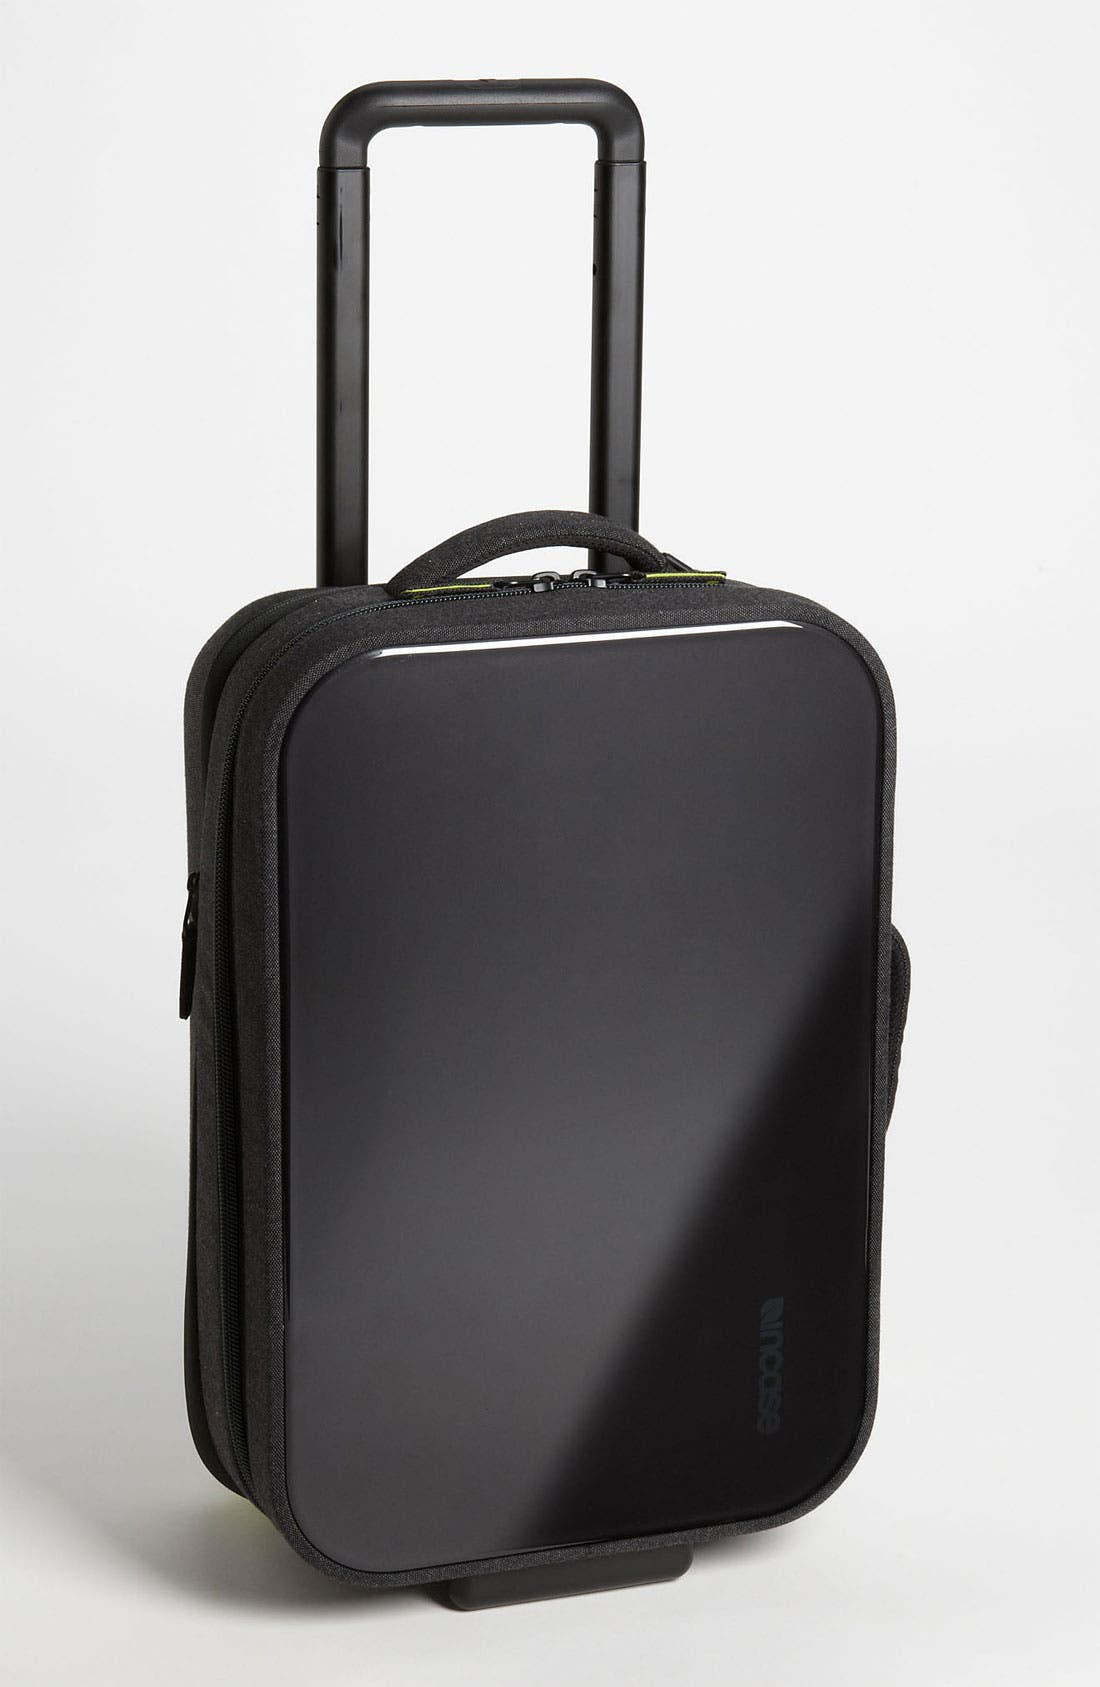 Alternate Image 1 Selected - Incase Designs 'EO' Hard Shell Roller Suitcase